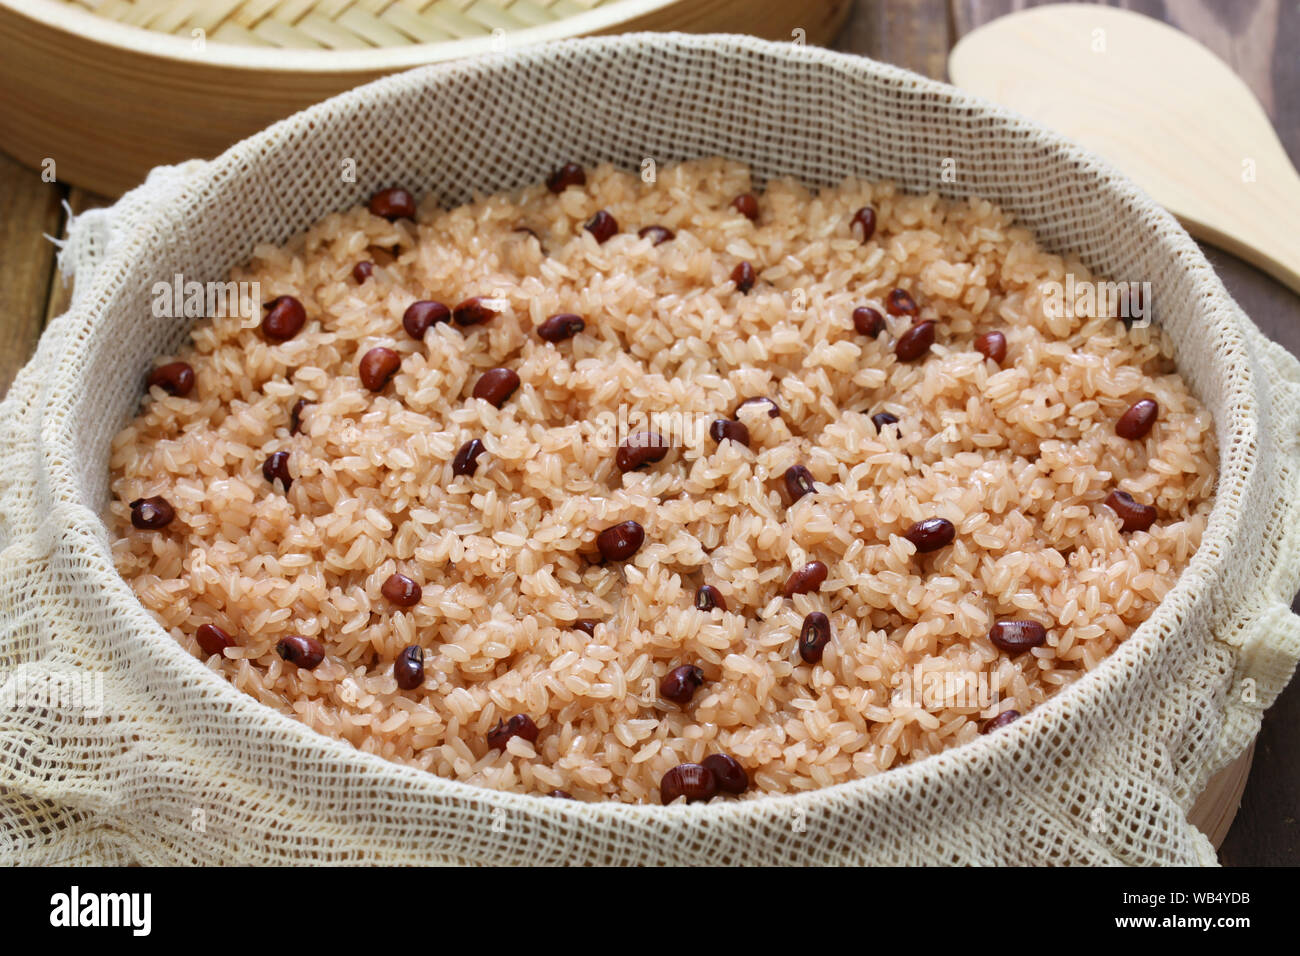 Sekihan, steamed sticky rice with red beans, Japanese food Stock Photo